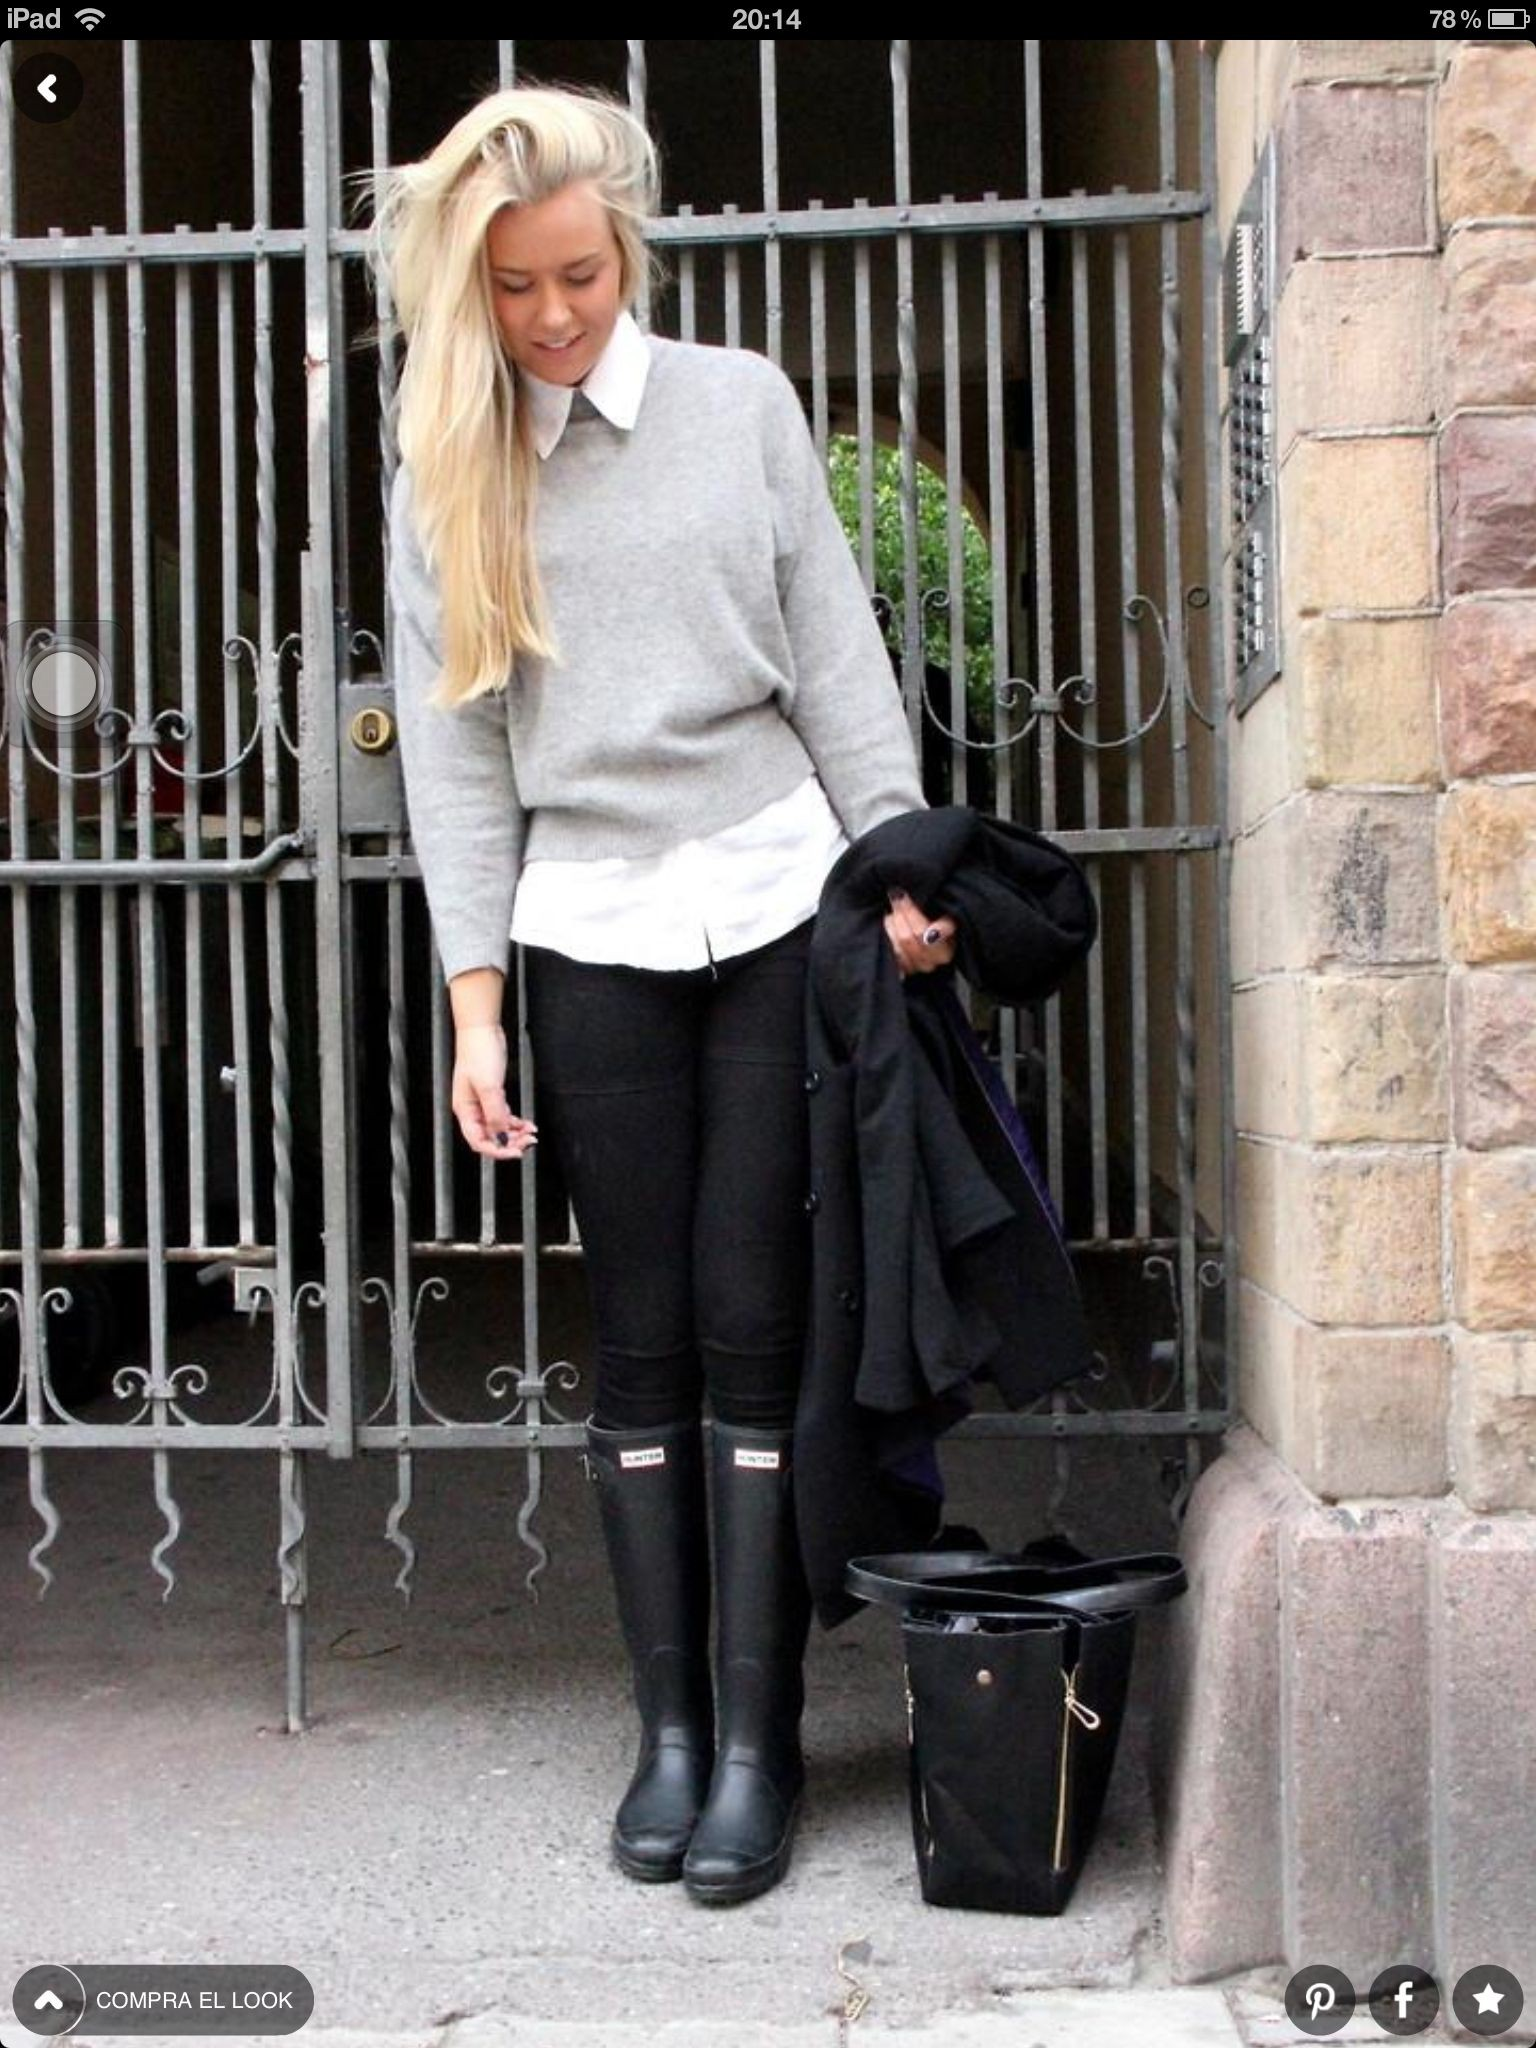 Black jeans with hunter boots